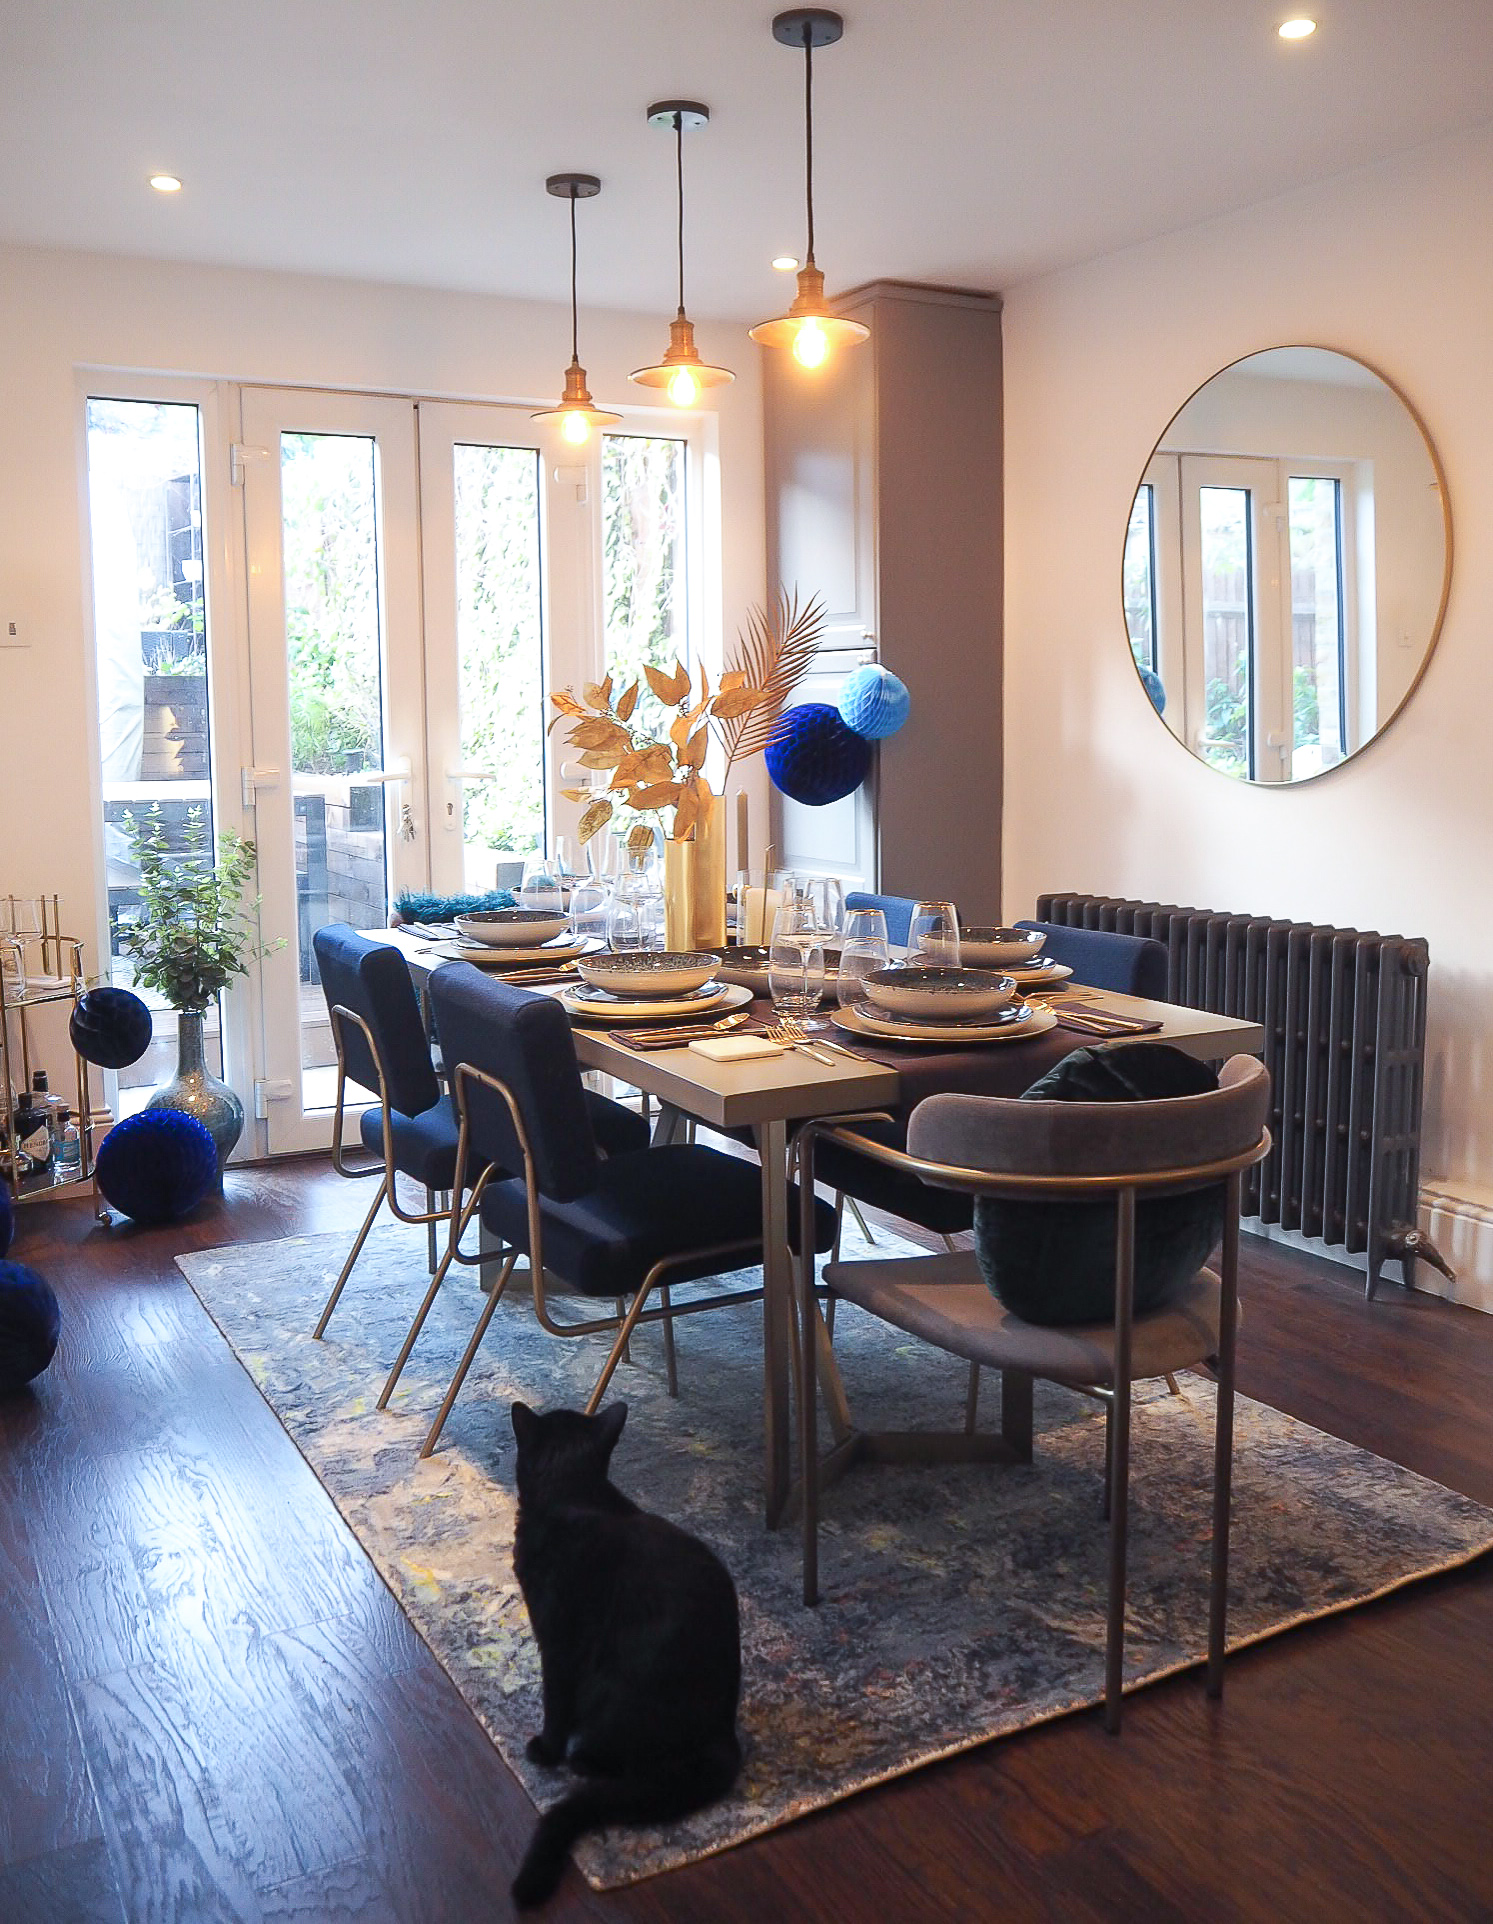 Tower concrete top dining table    £899 , West Elm;   Orion Blue rug   £499, West Elm.   Blue frame wire dining chair   £199, West Elm.   Round velvet cushion     £39 on the chair from West Elm.